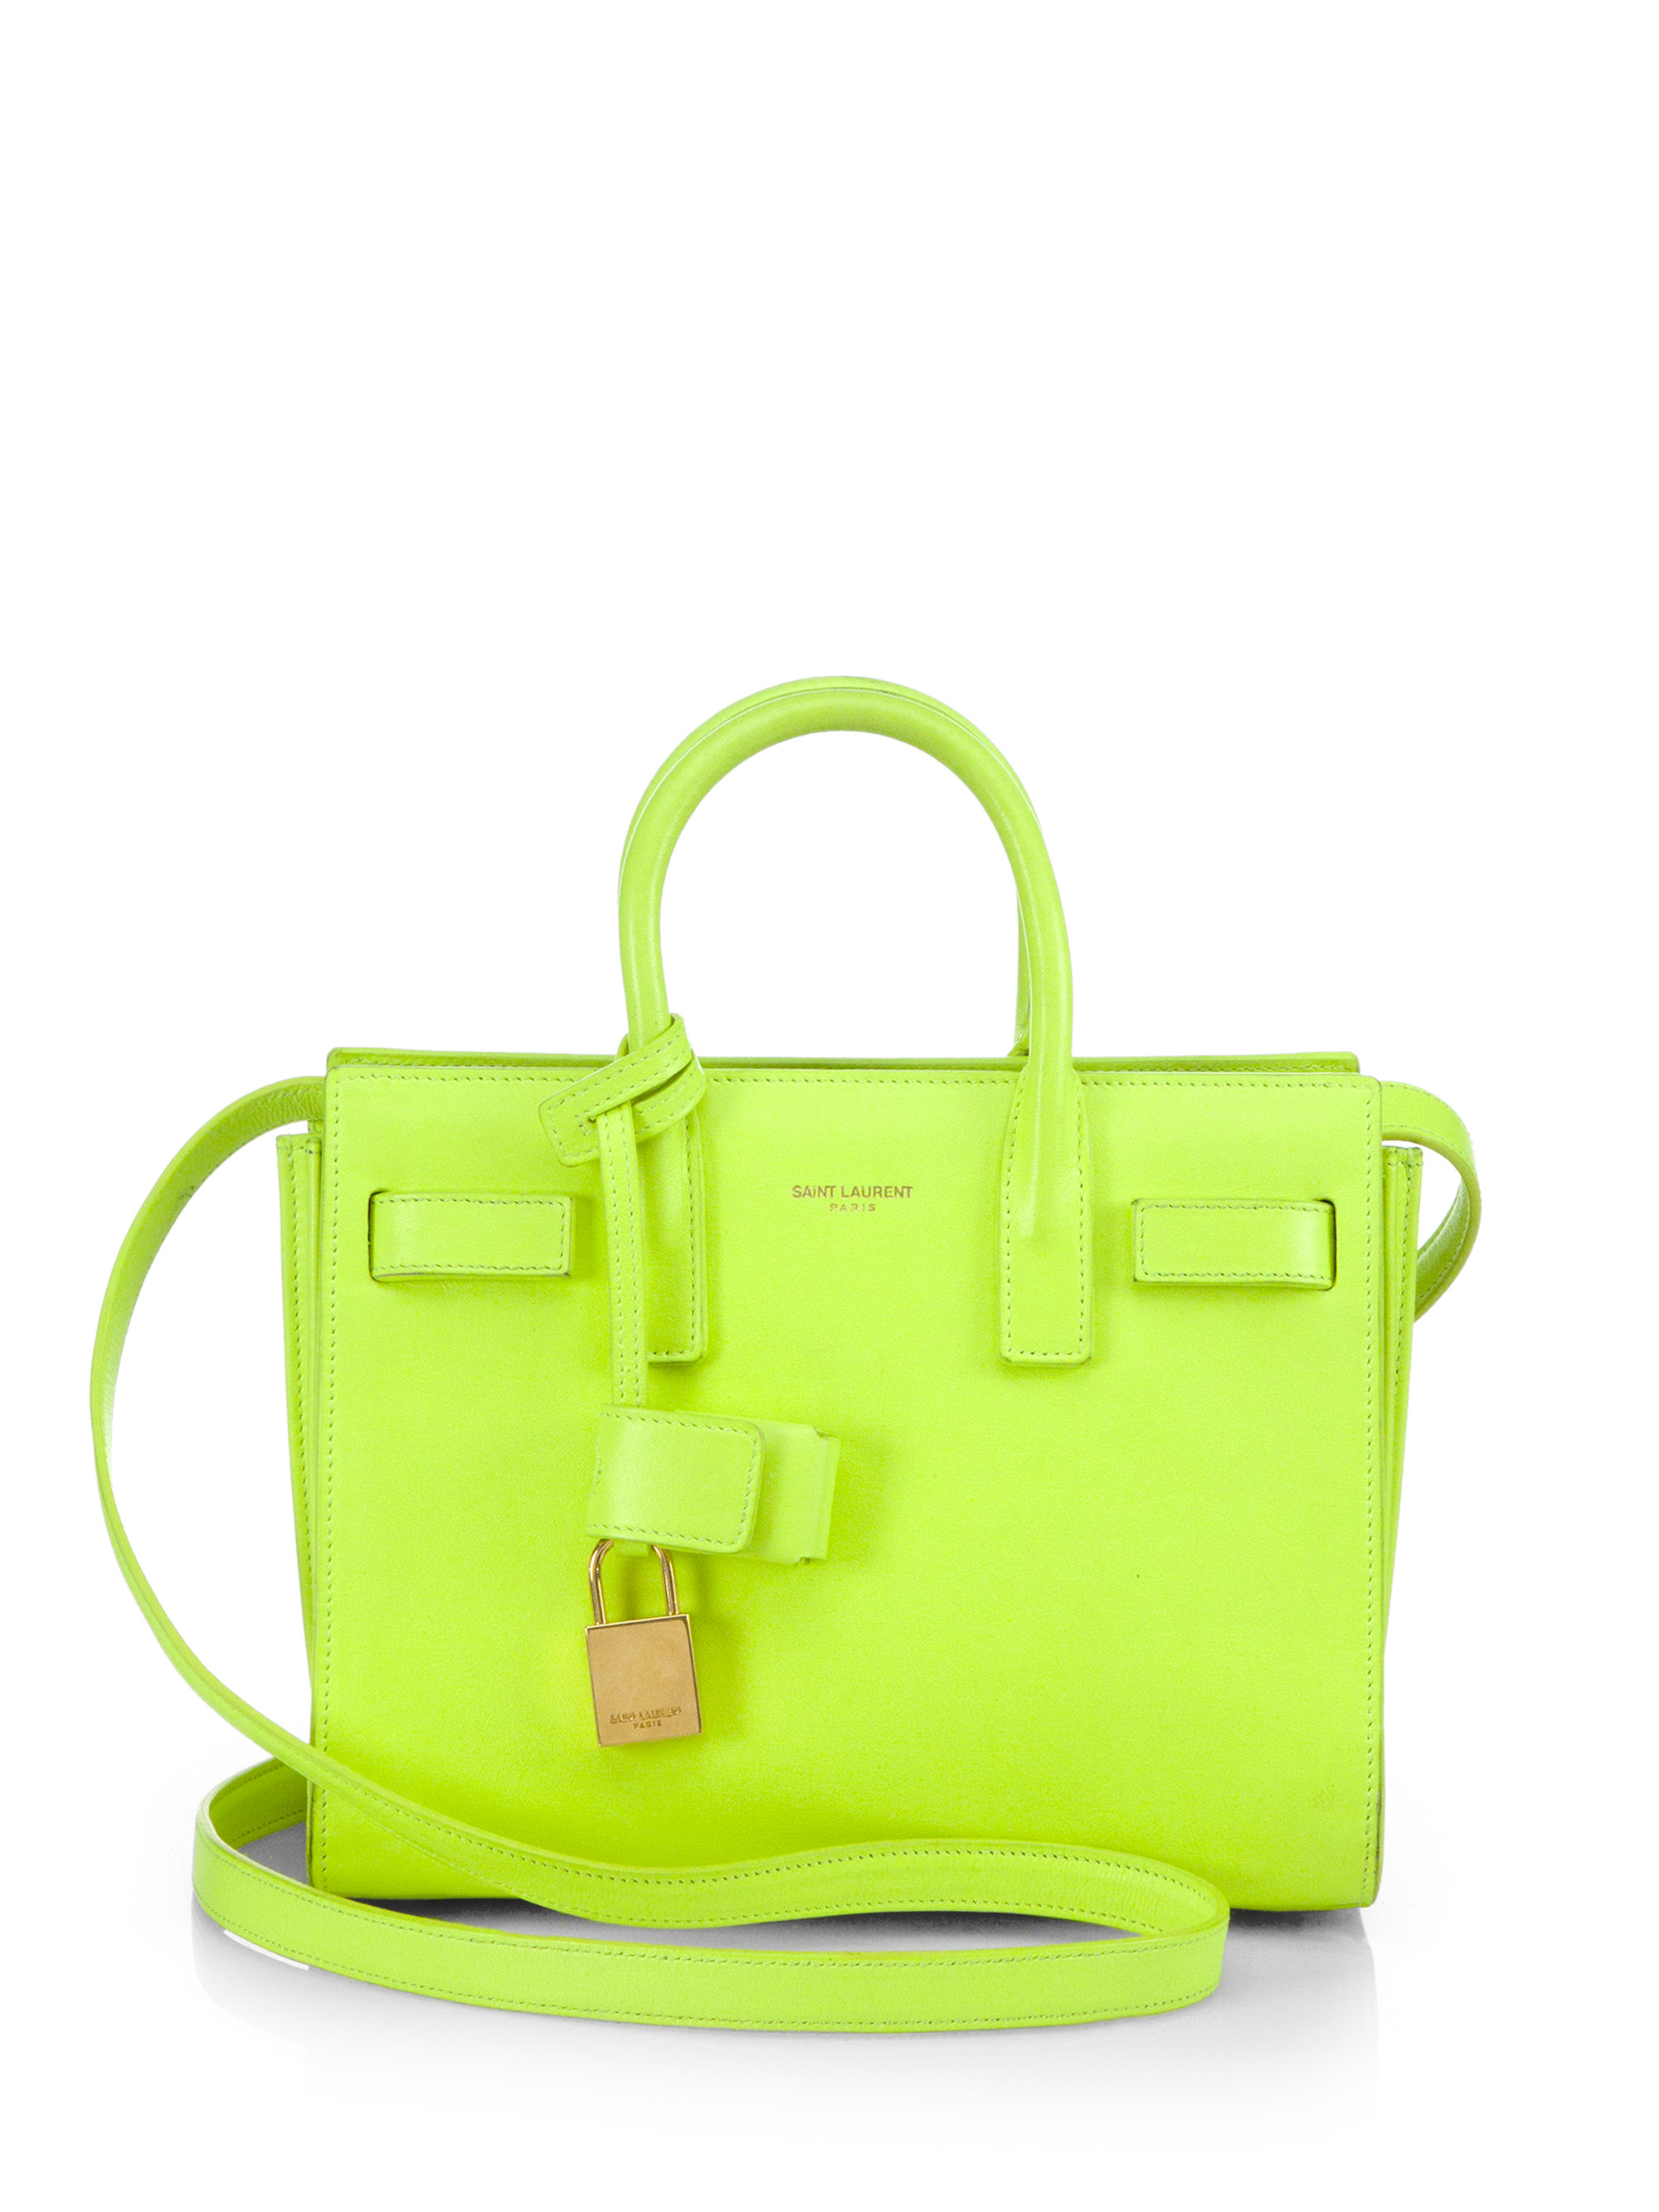 replica yves saint laurent cabas chyc small yellow